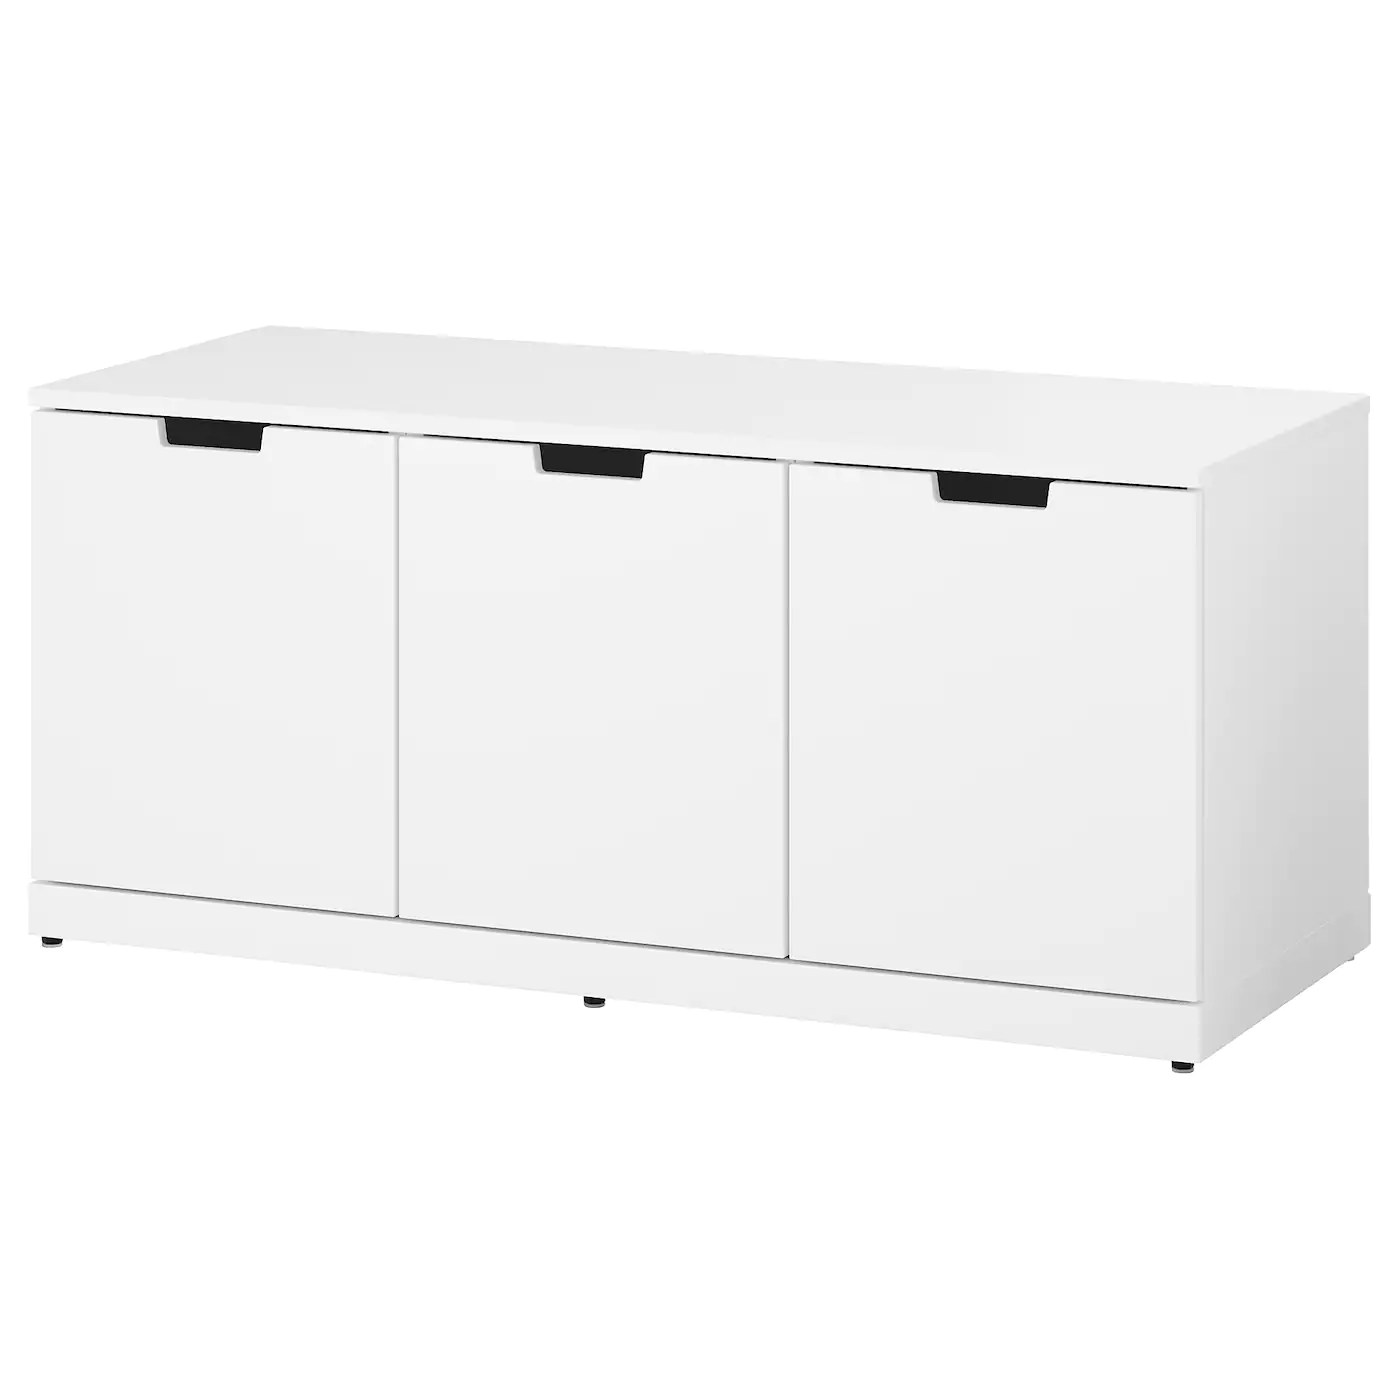 Storage Chest Ikea Chest Of Drawers Dressers Ikea